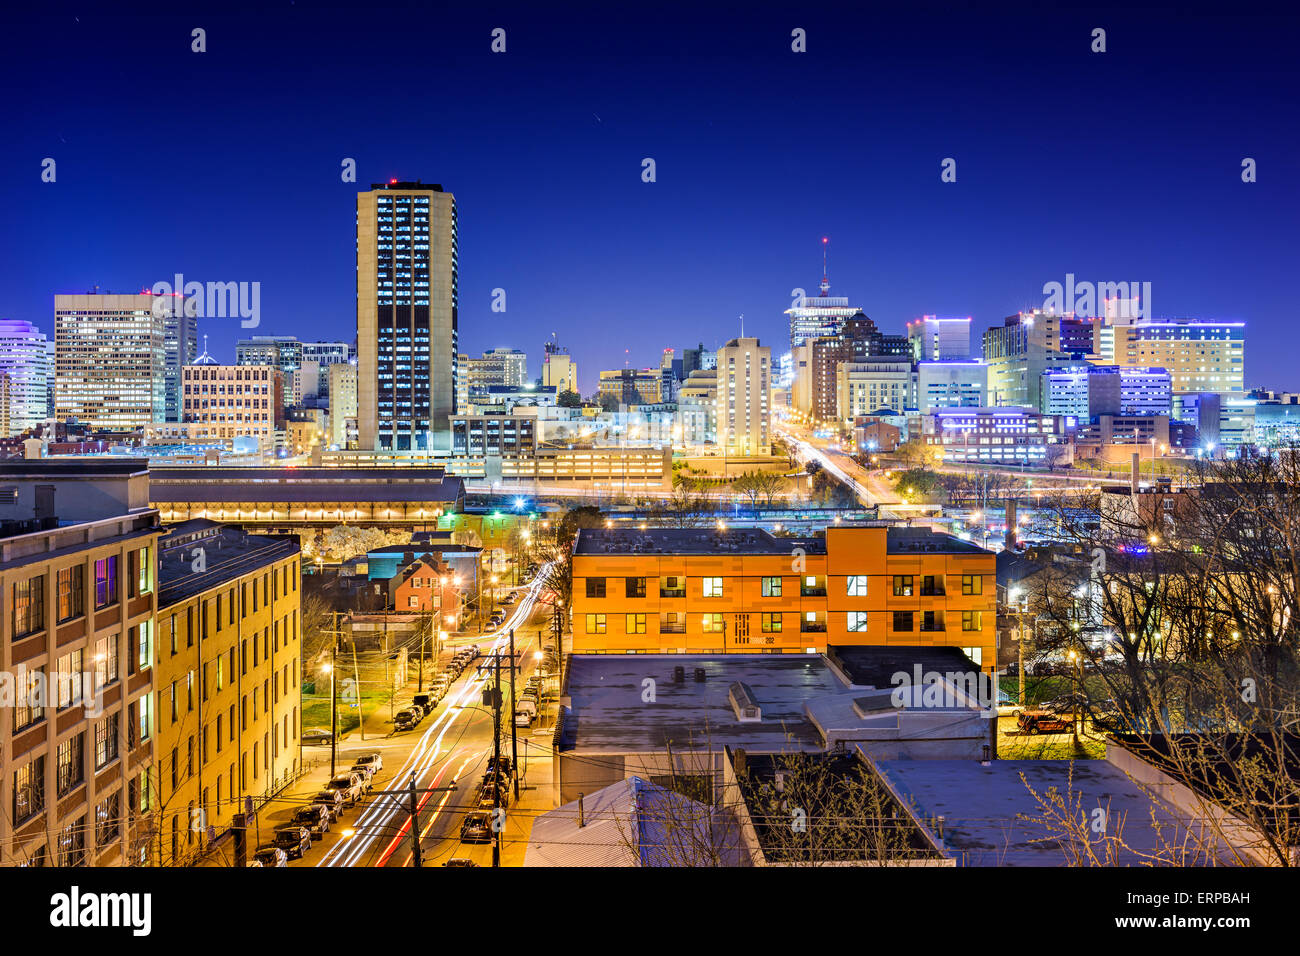 Richmond, Virginia, USA downtown skyline at night. - Stock Image